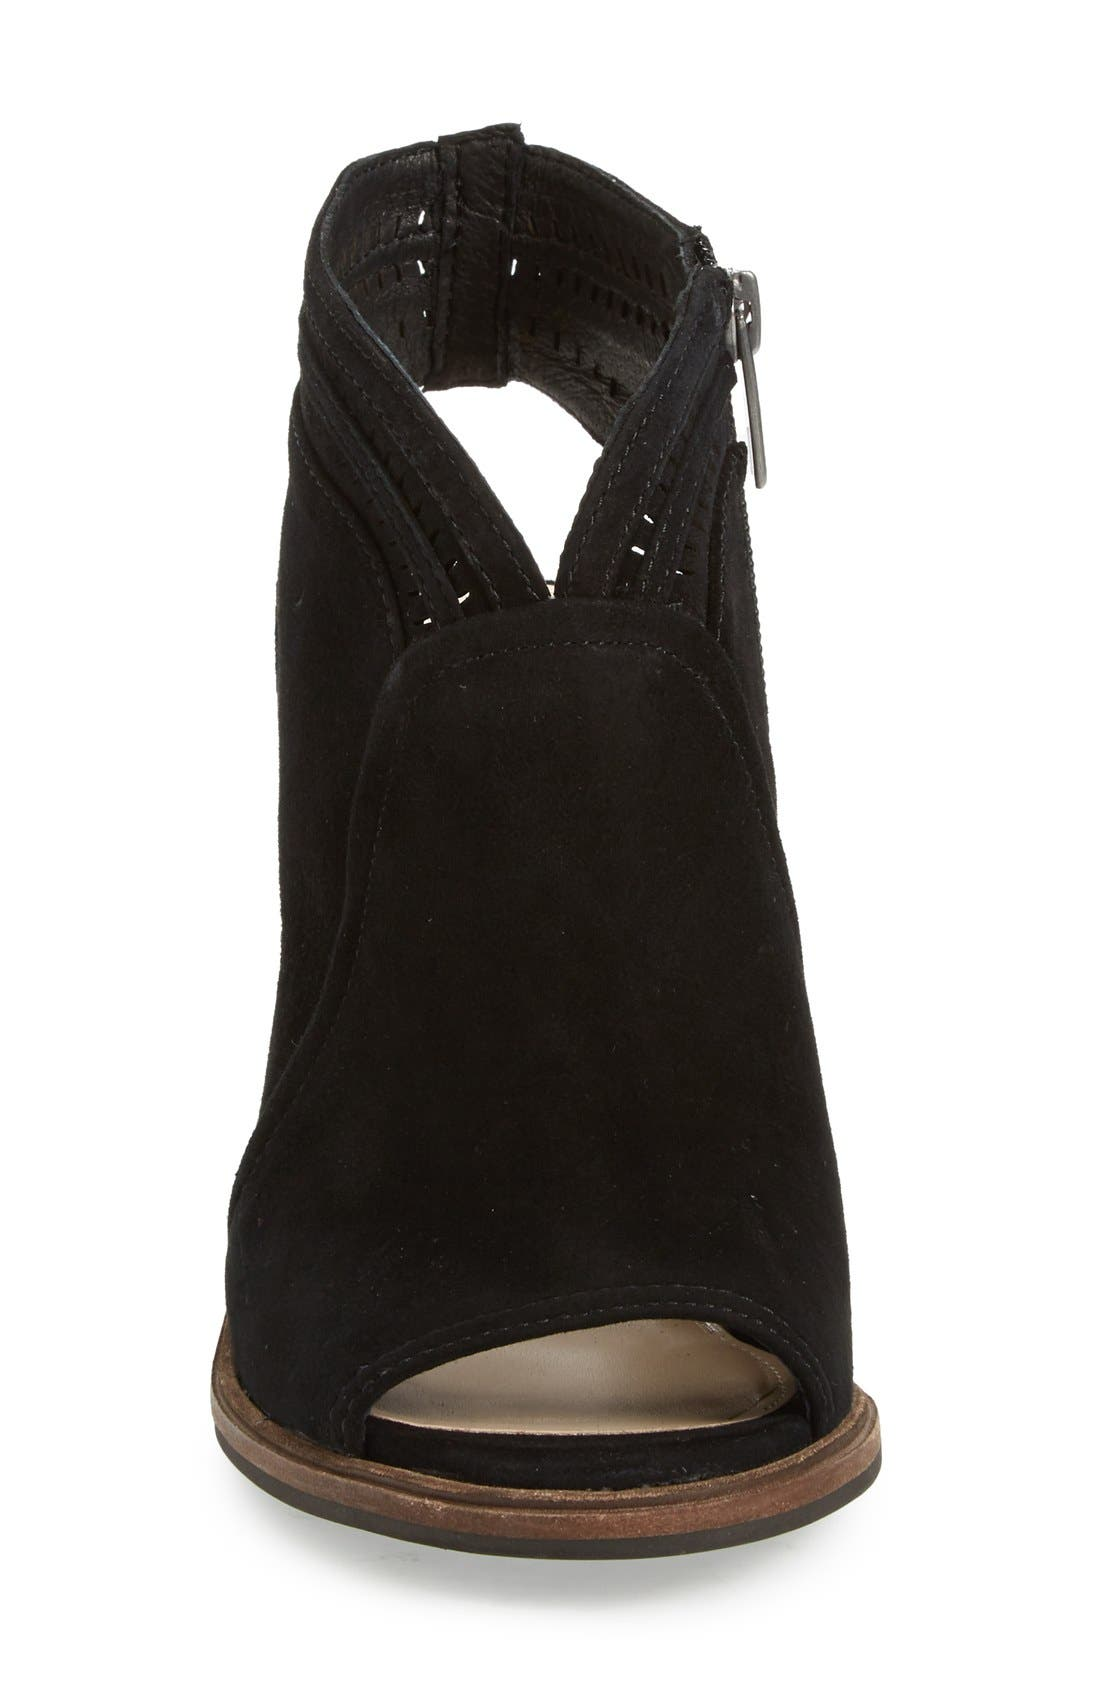 'Koral' Perforated Open Toe Bootie,                             Alternate thumbnail 3, color,                             001